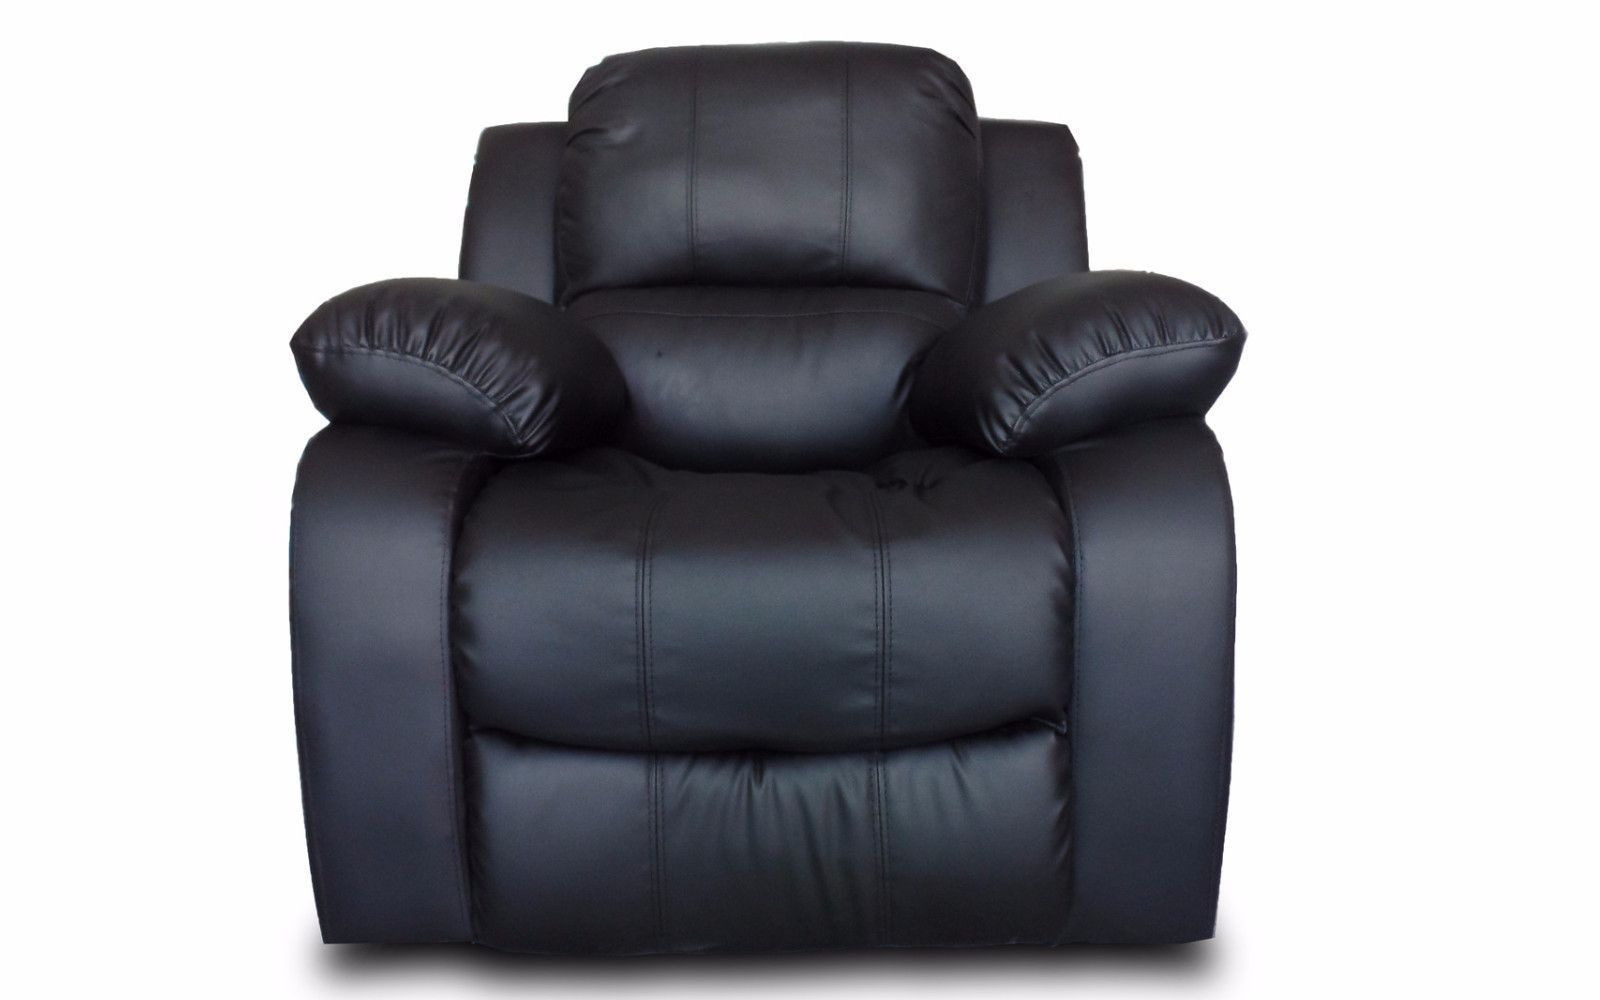 Scansit Sessel Bob Classic Leather Recliner Chair Reception Sillones Reclinable